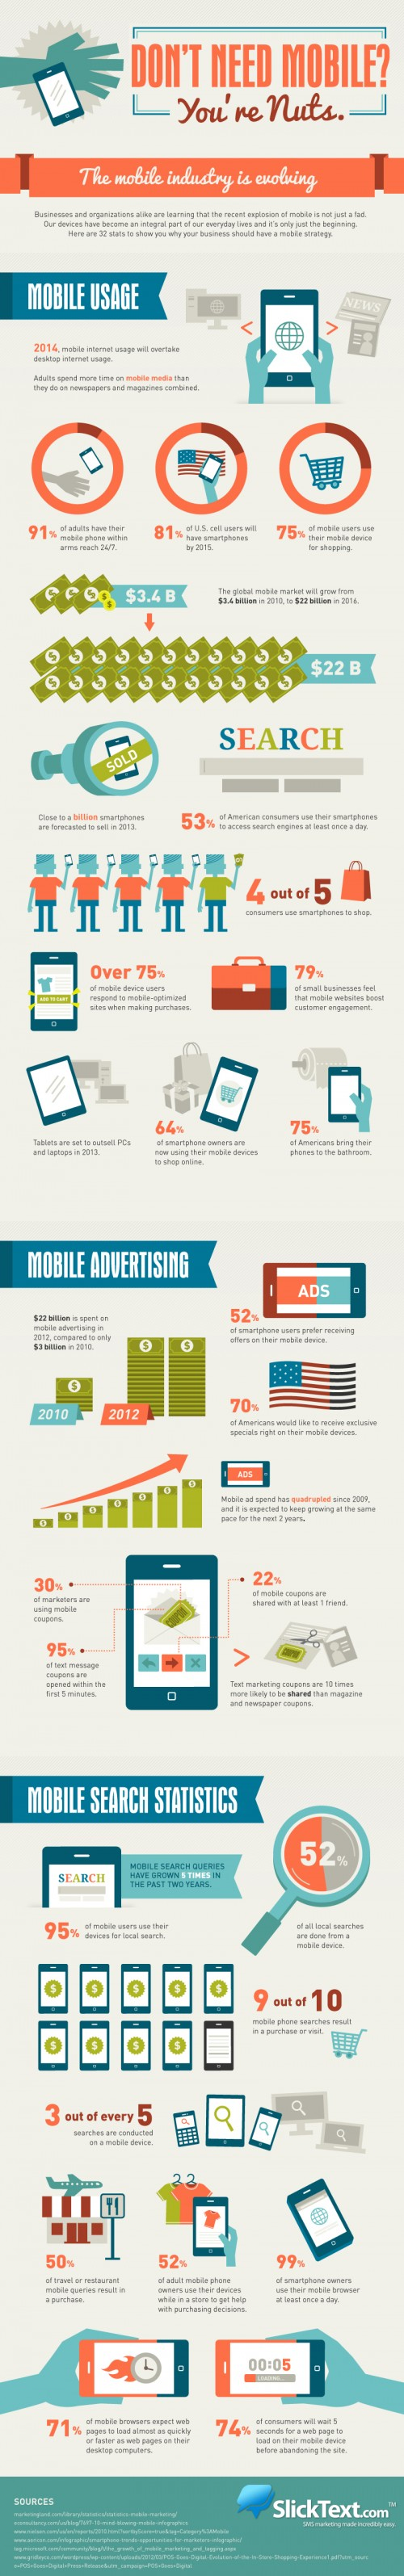 Mobile Marketing and mobile facts Infographic